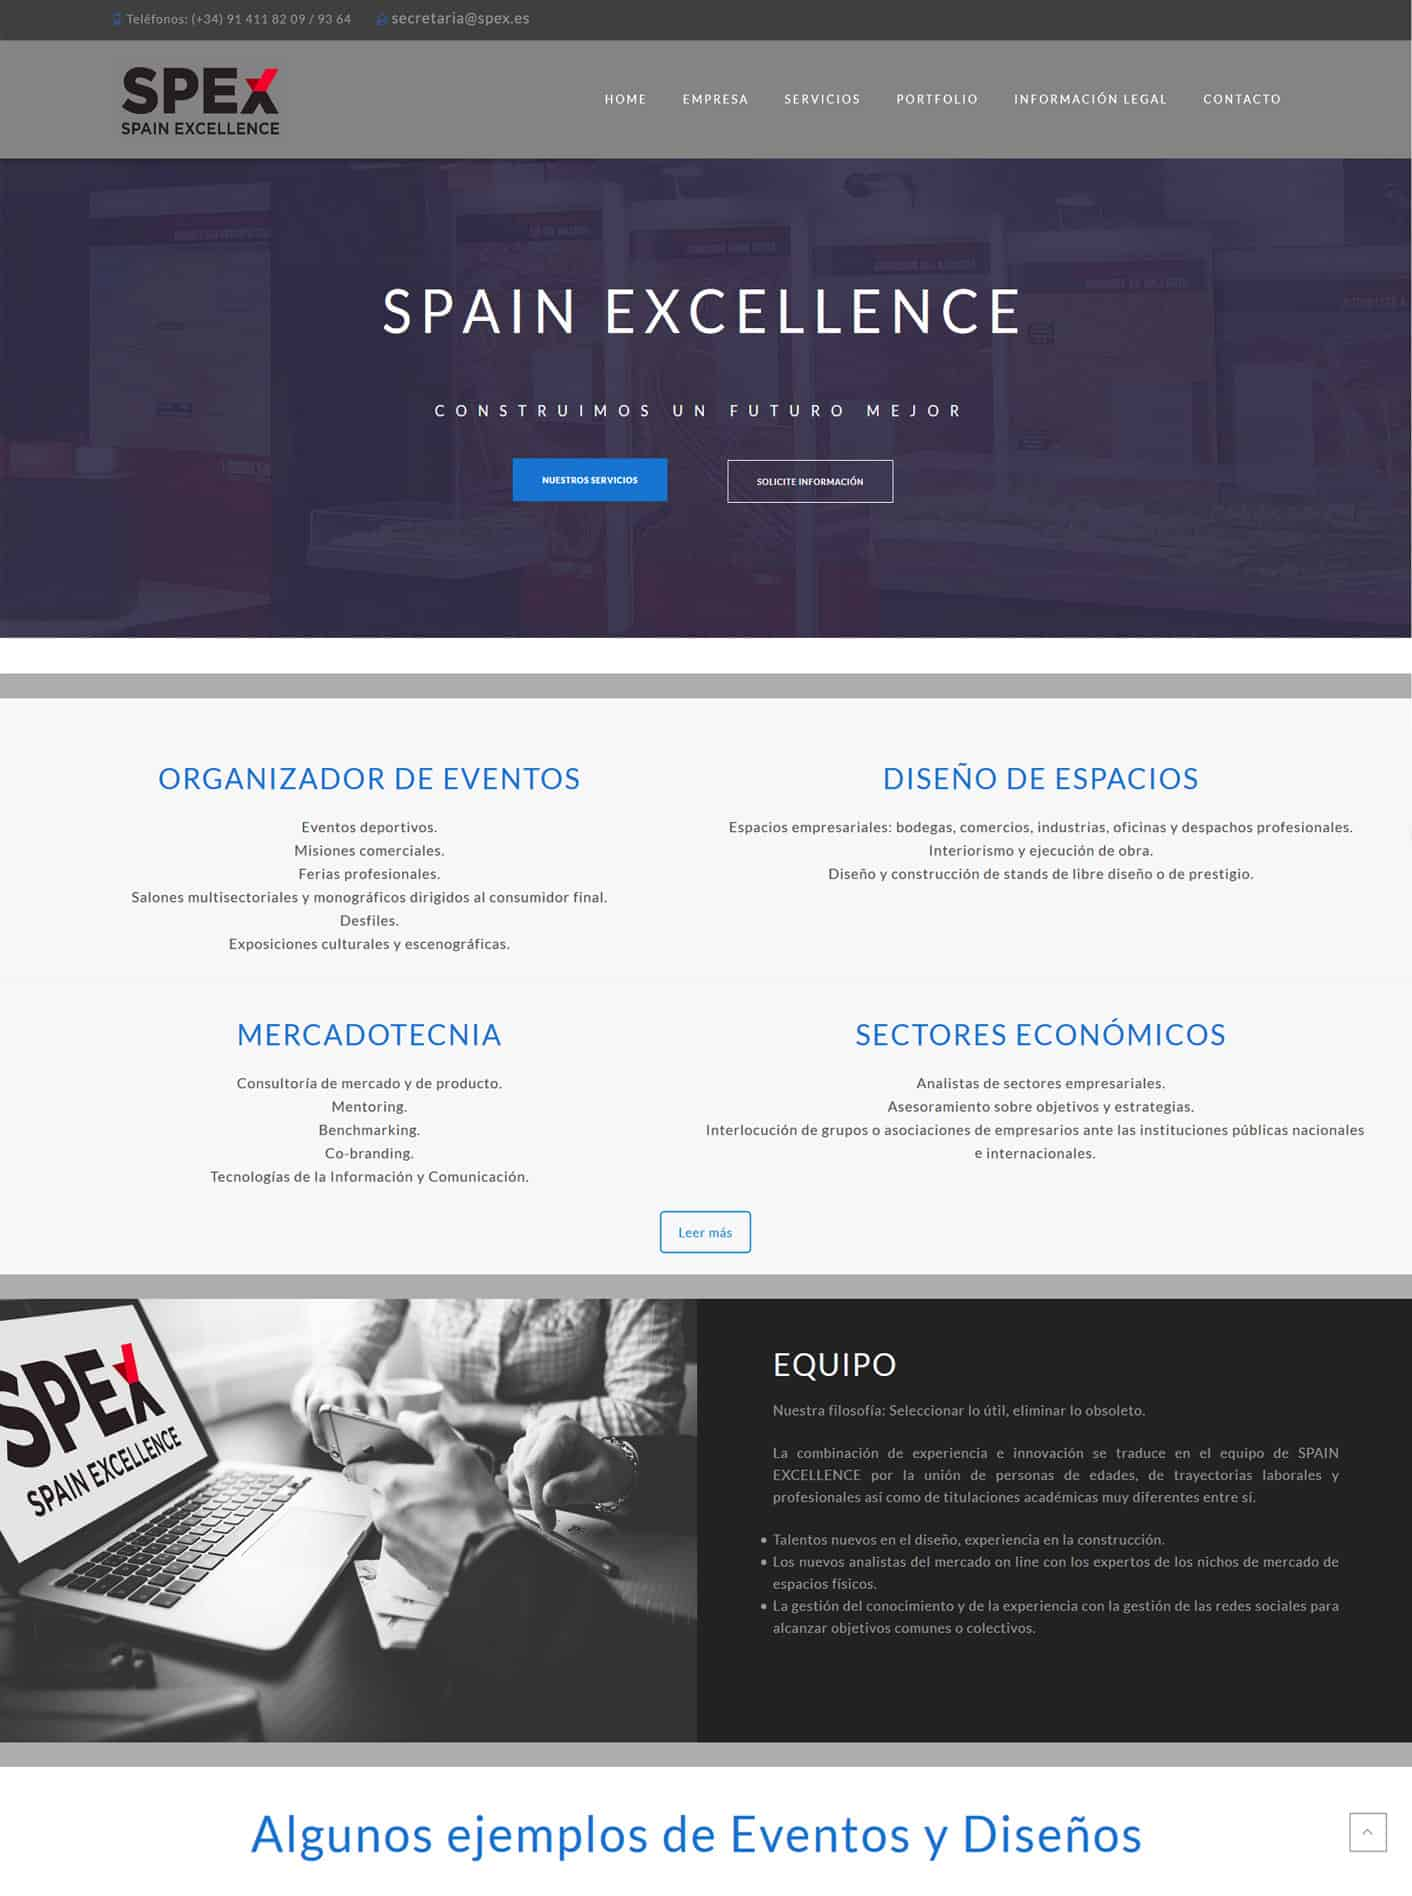 Spex: Spain Excellence